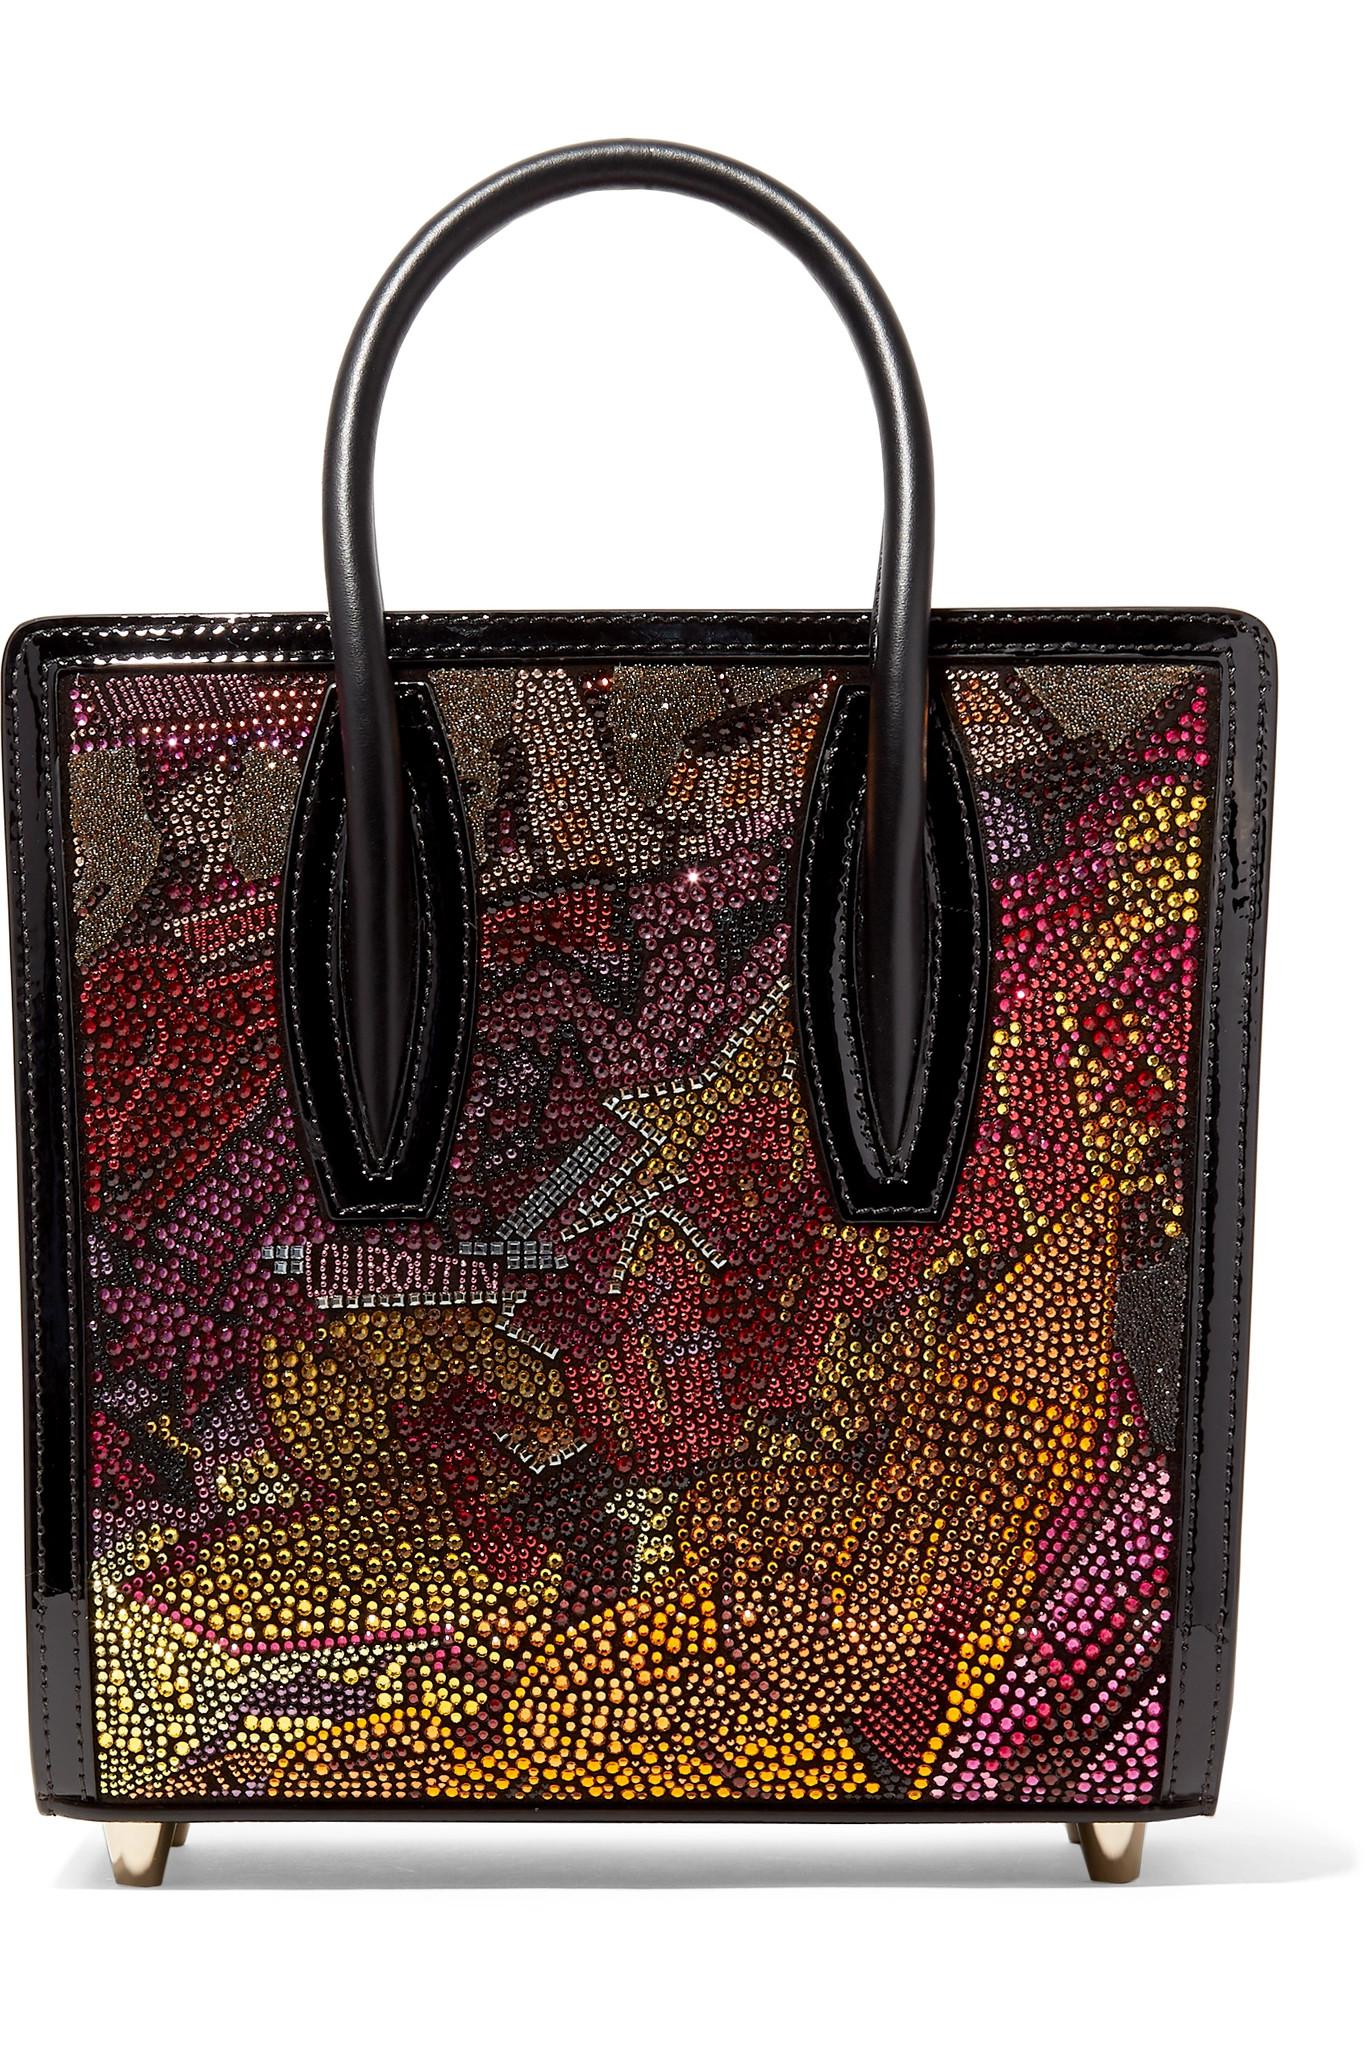 77a16ecde3c Christian Louboutin. Women s Paloma Small Embellished Printed Leather Tote